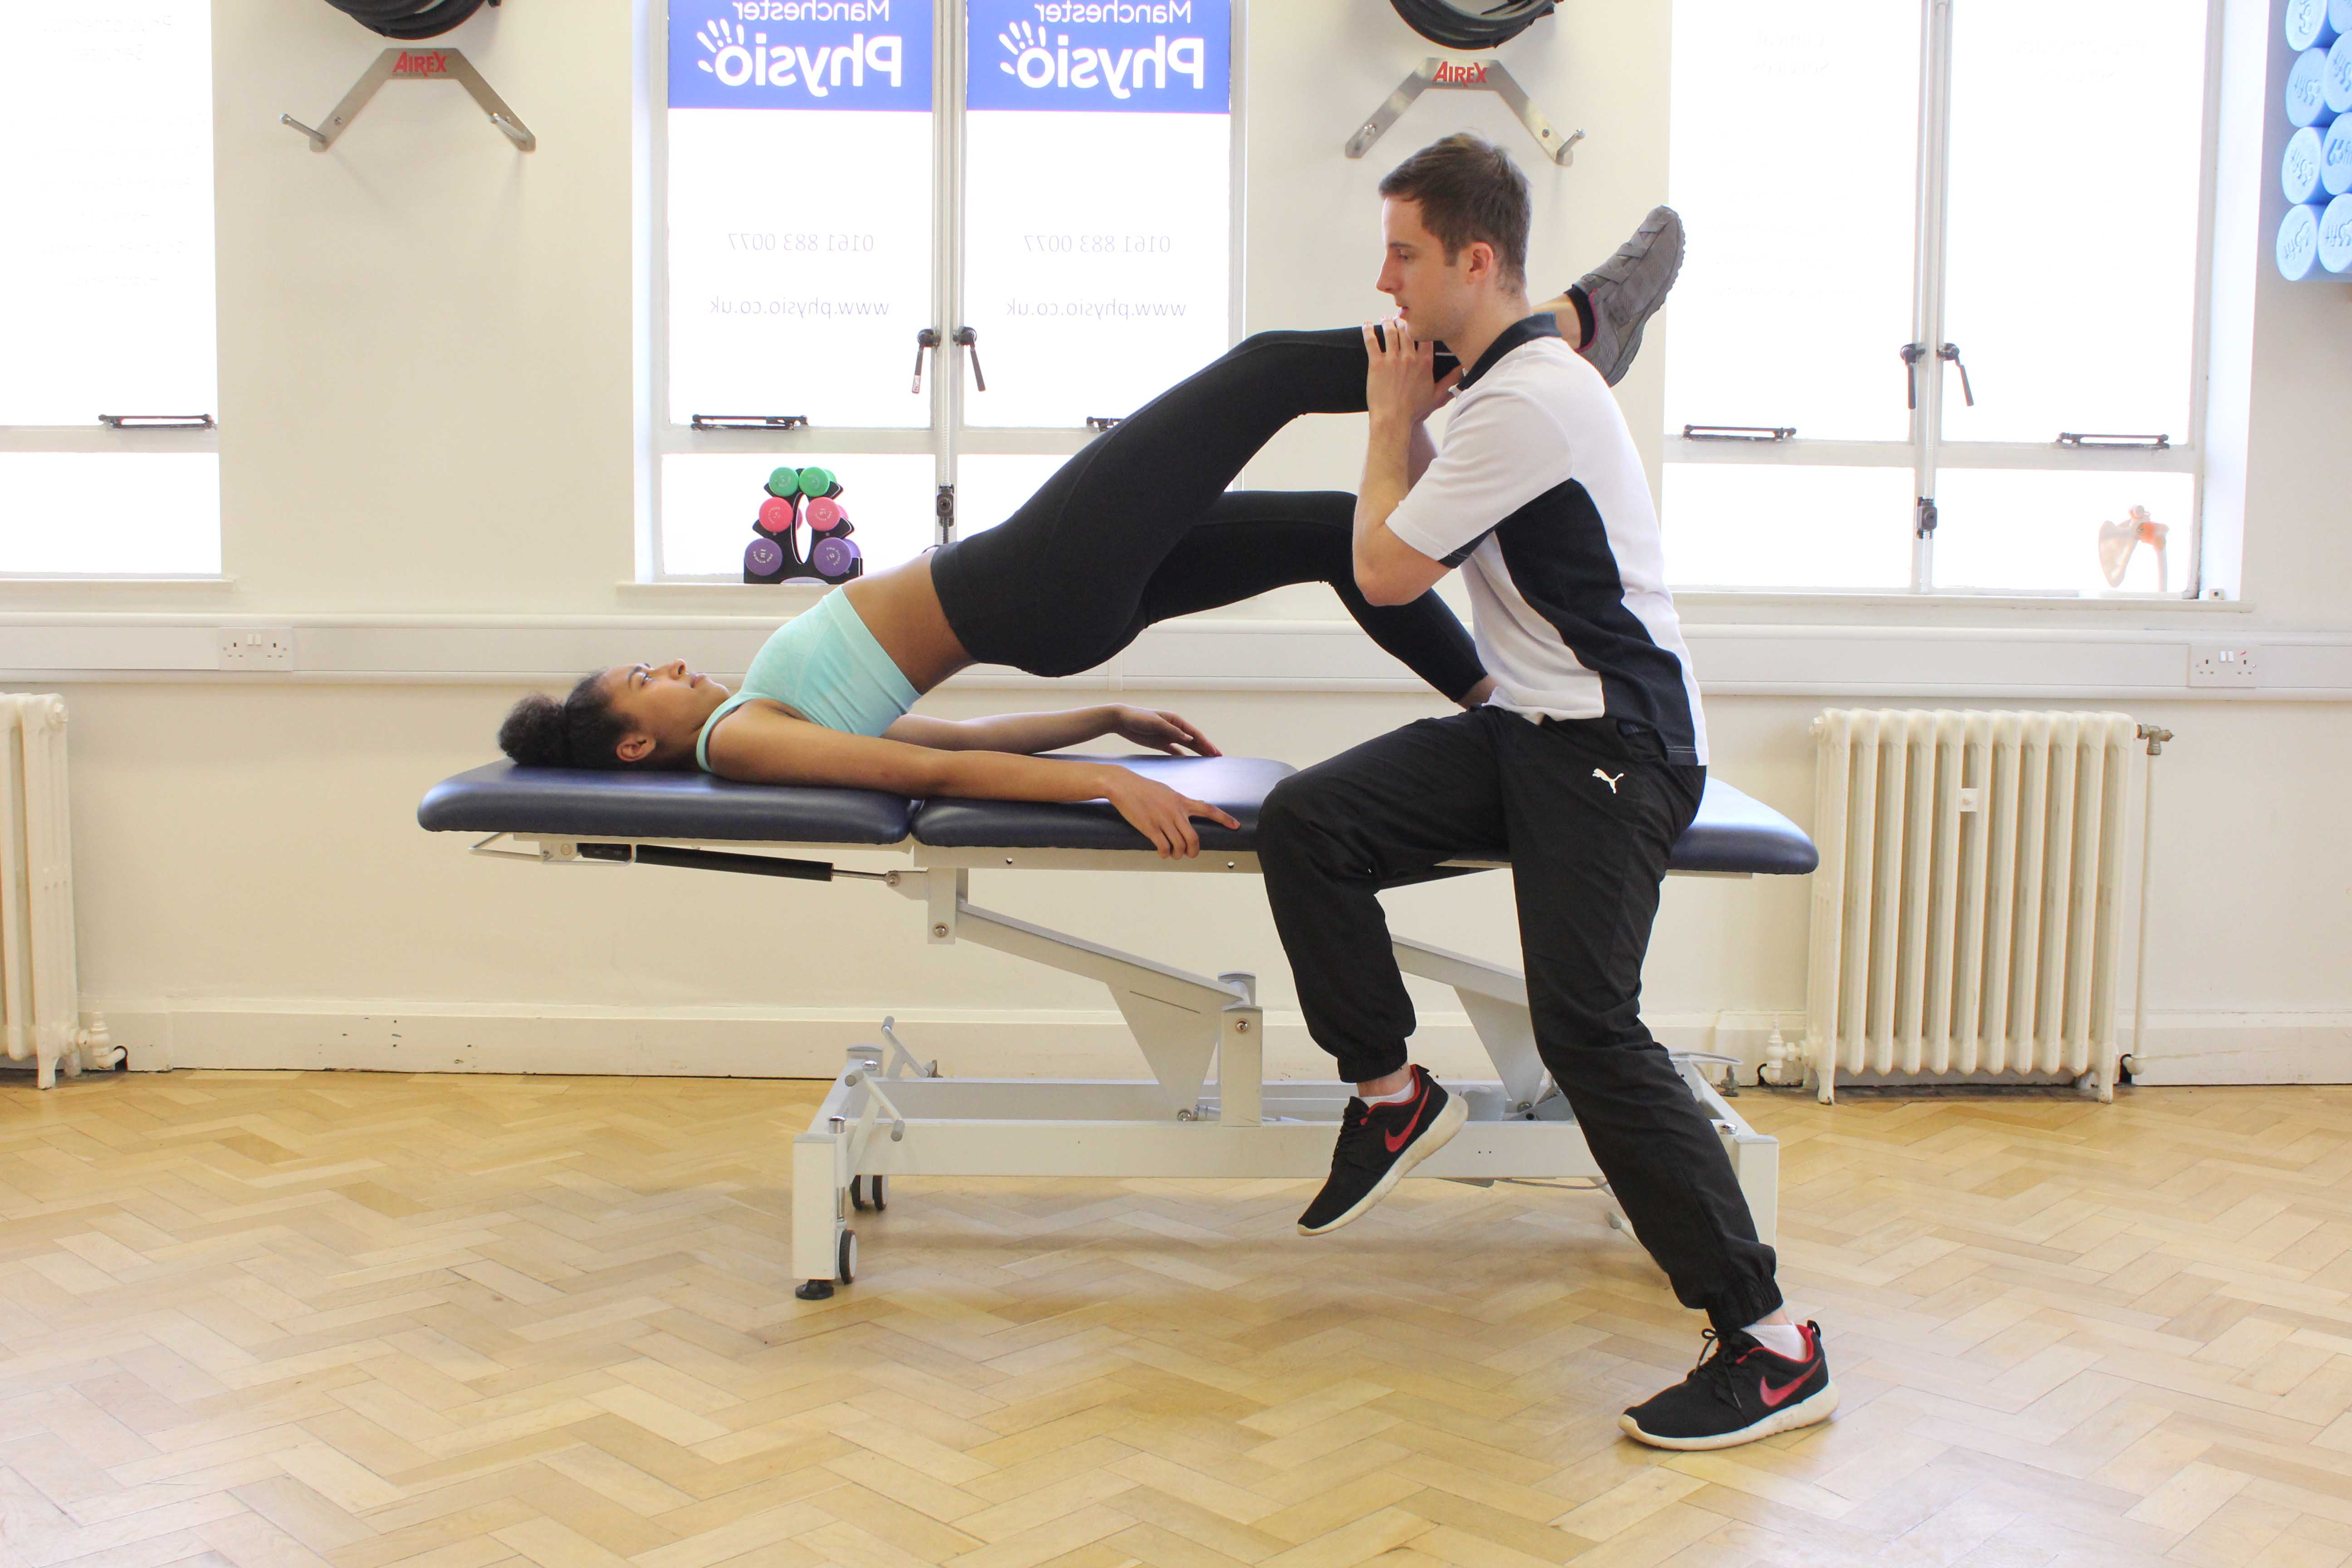 Progressive strengthening hip exercises supervised by experienced therapist